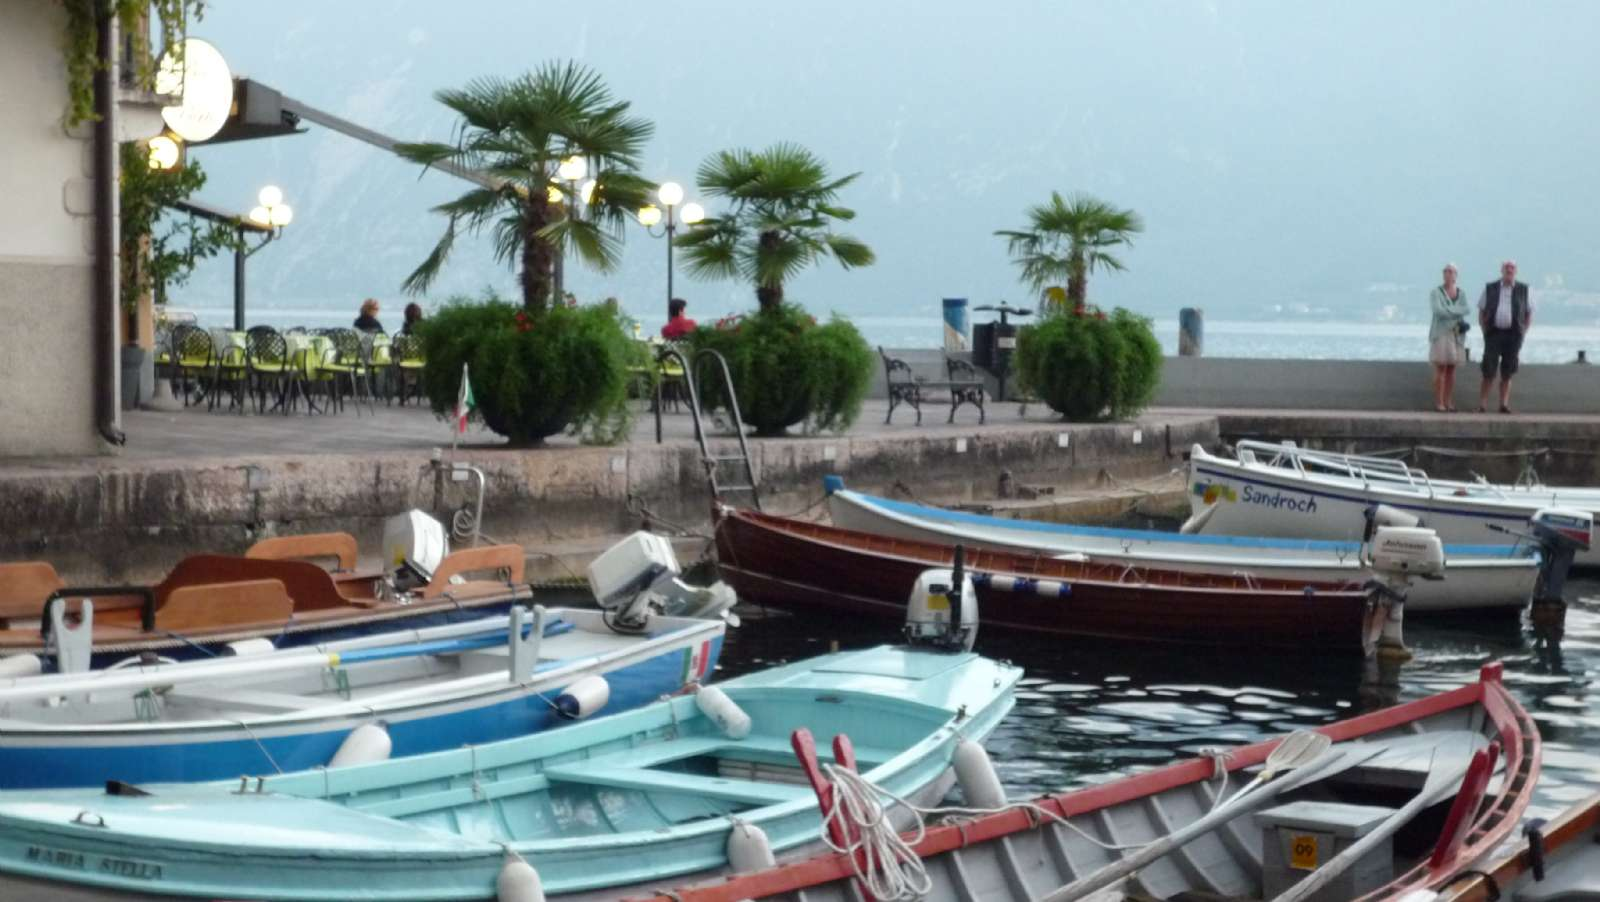 The harbour at Iseo town